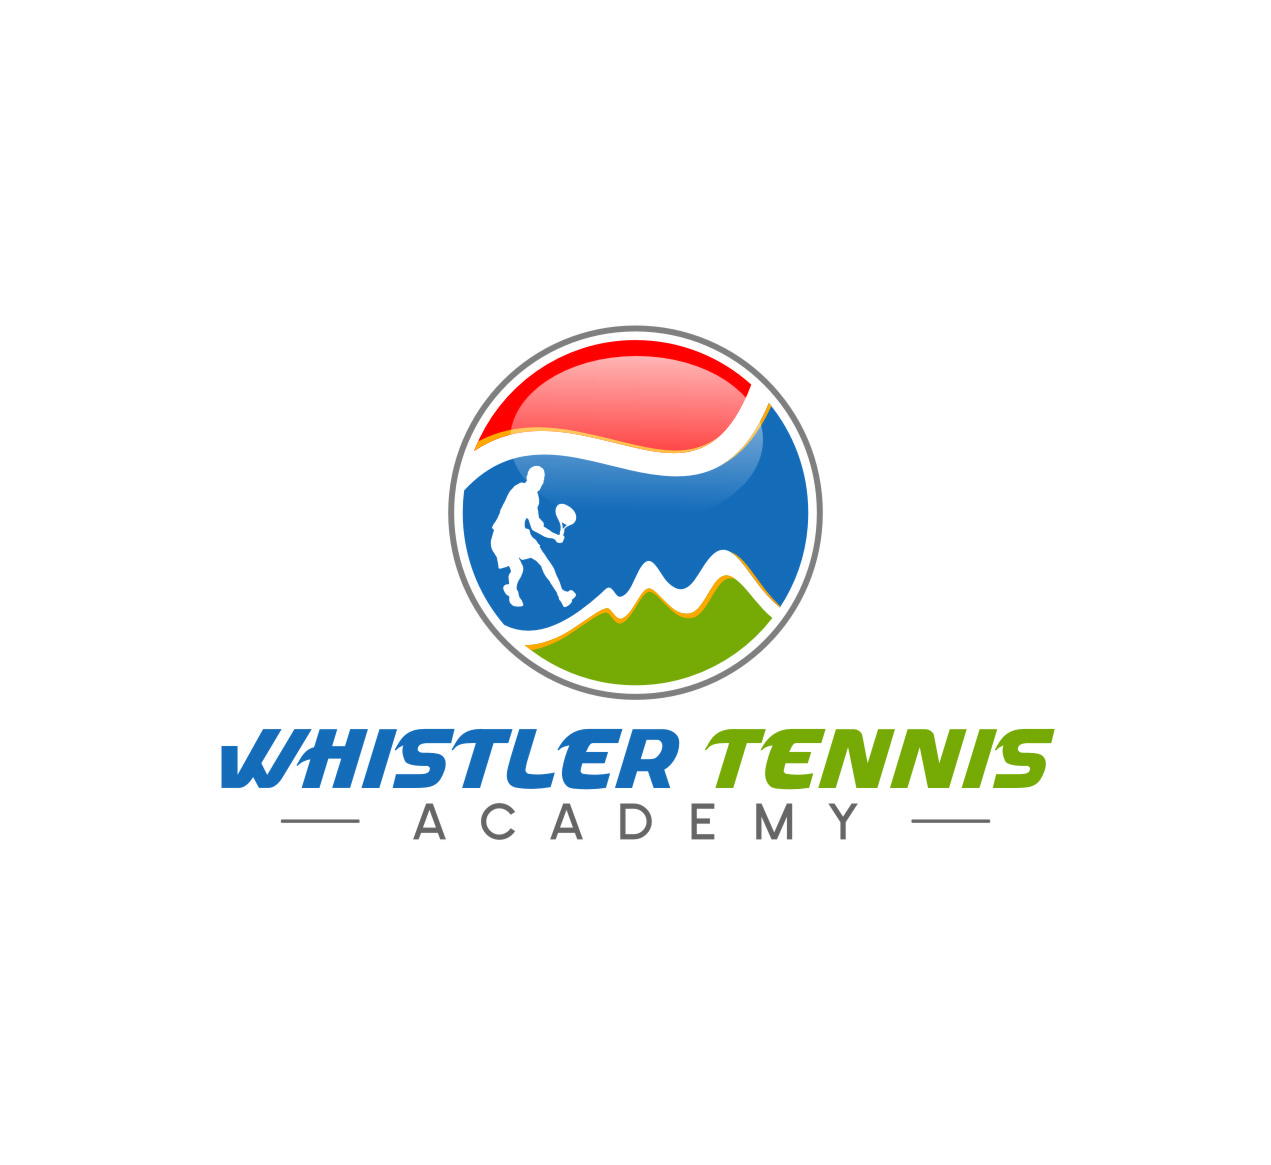 Logo Design by Ngepet_art - Entry No. 210 in the Logo Design Contest Imaginative Logo Design for Whistler Tennis Academy.